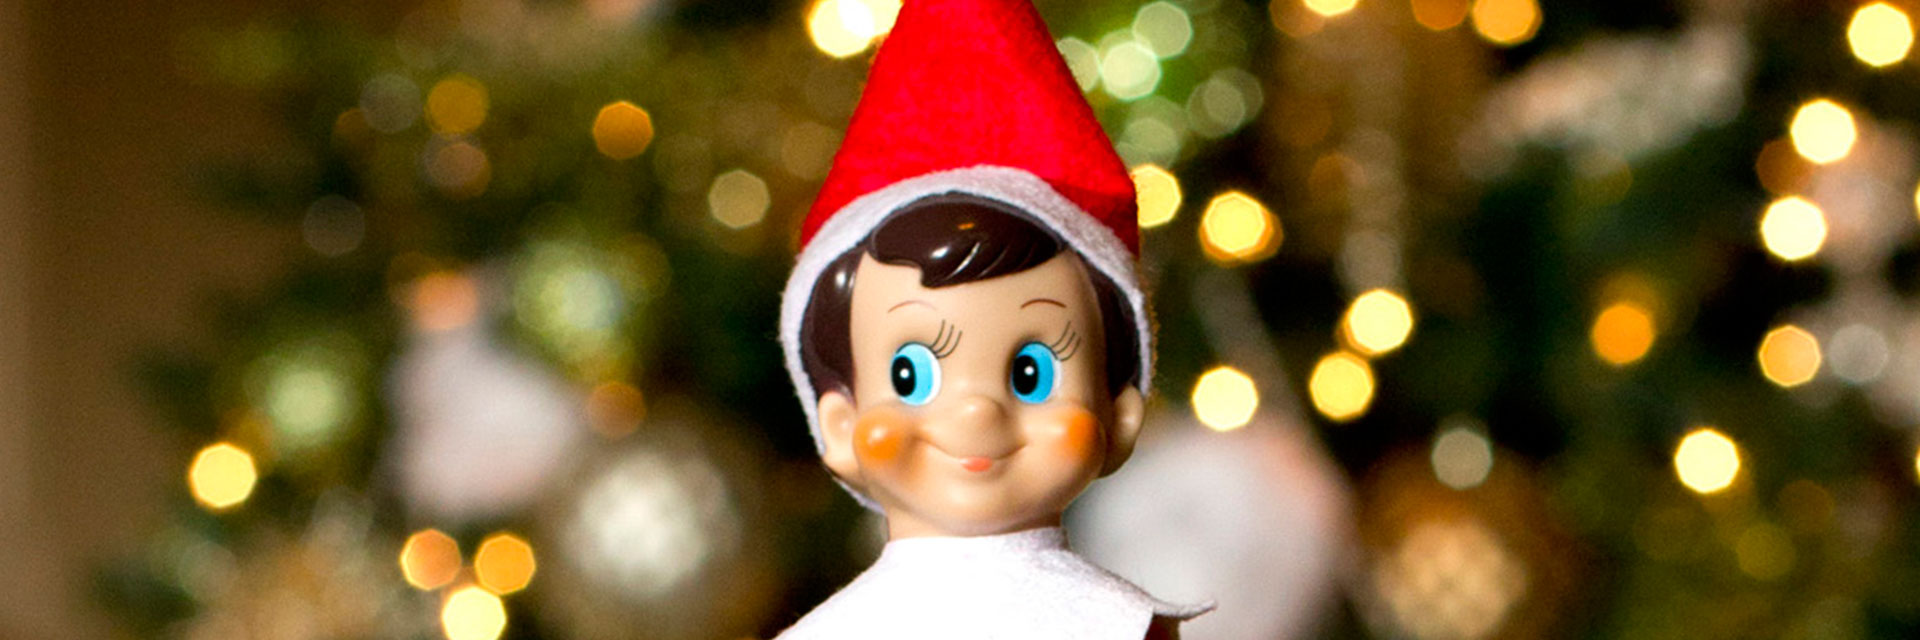 Archie manhattan 39 s elf on the shelf archer hotel blog - Christmas elf on the shelf wallpaper ...